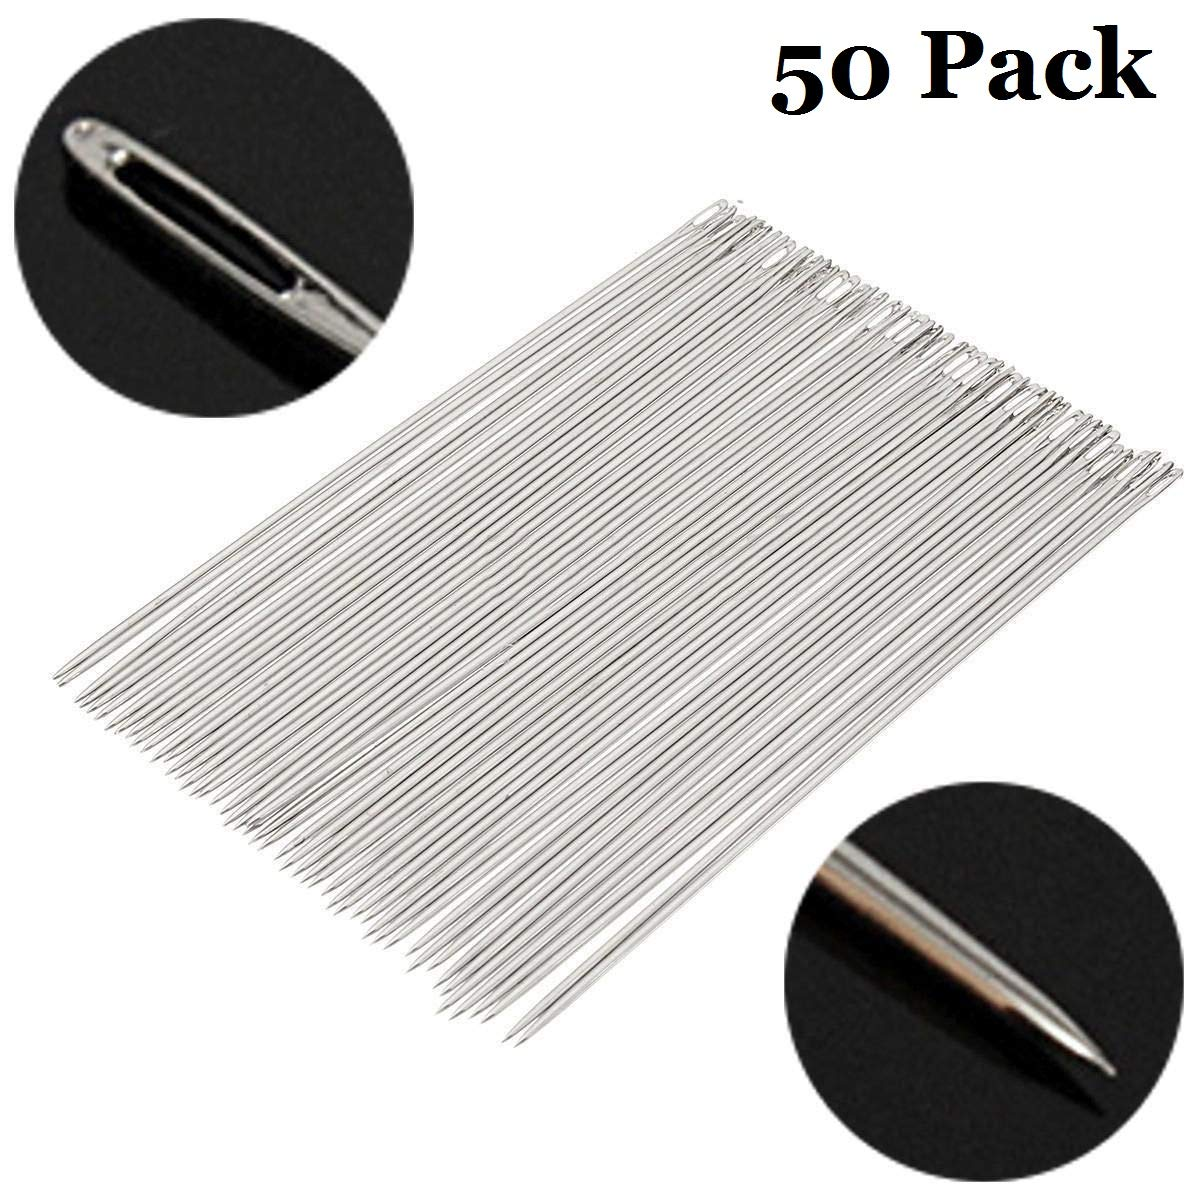 Wholesale OurHommie 50 Pack 6 Inch Long Upholsterer Needles Large Eye Needle for Sewing Act Crafts 150mm Long x 1.6mm Thickness